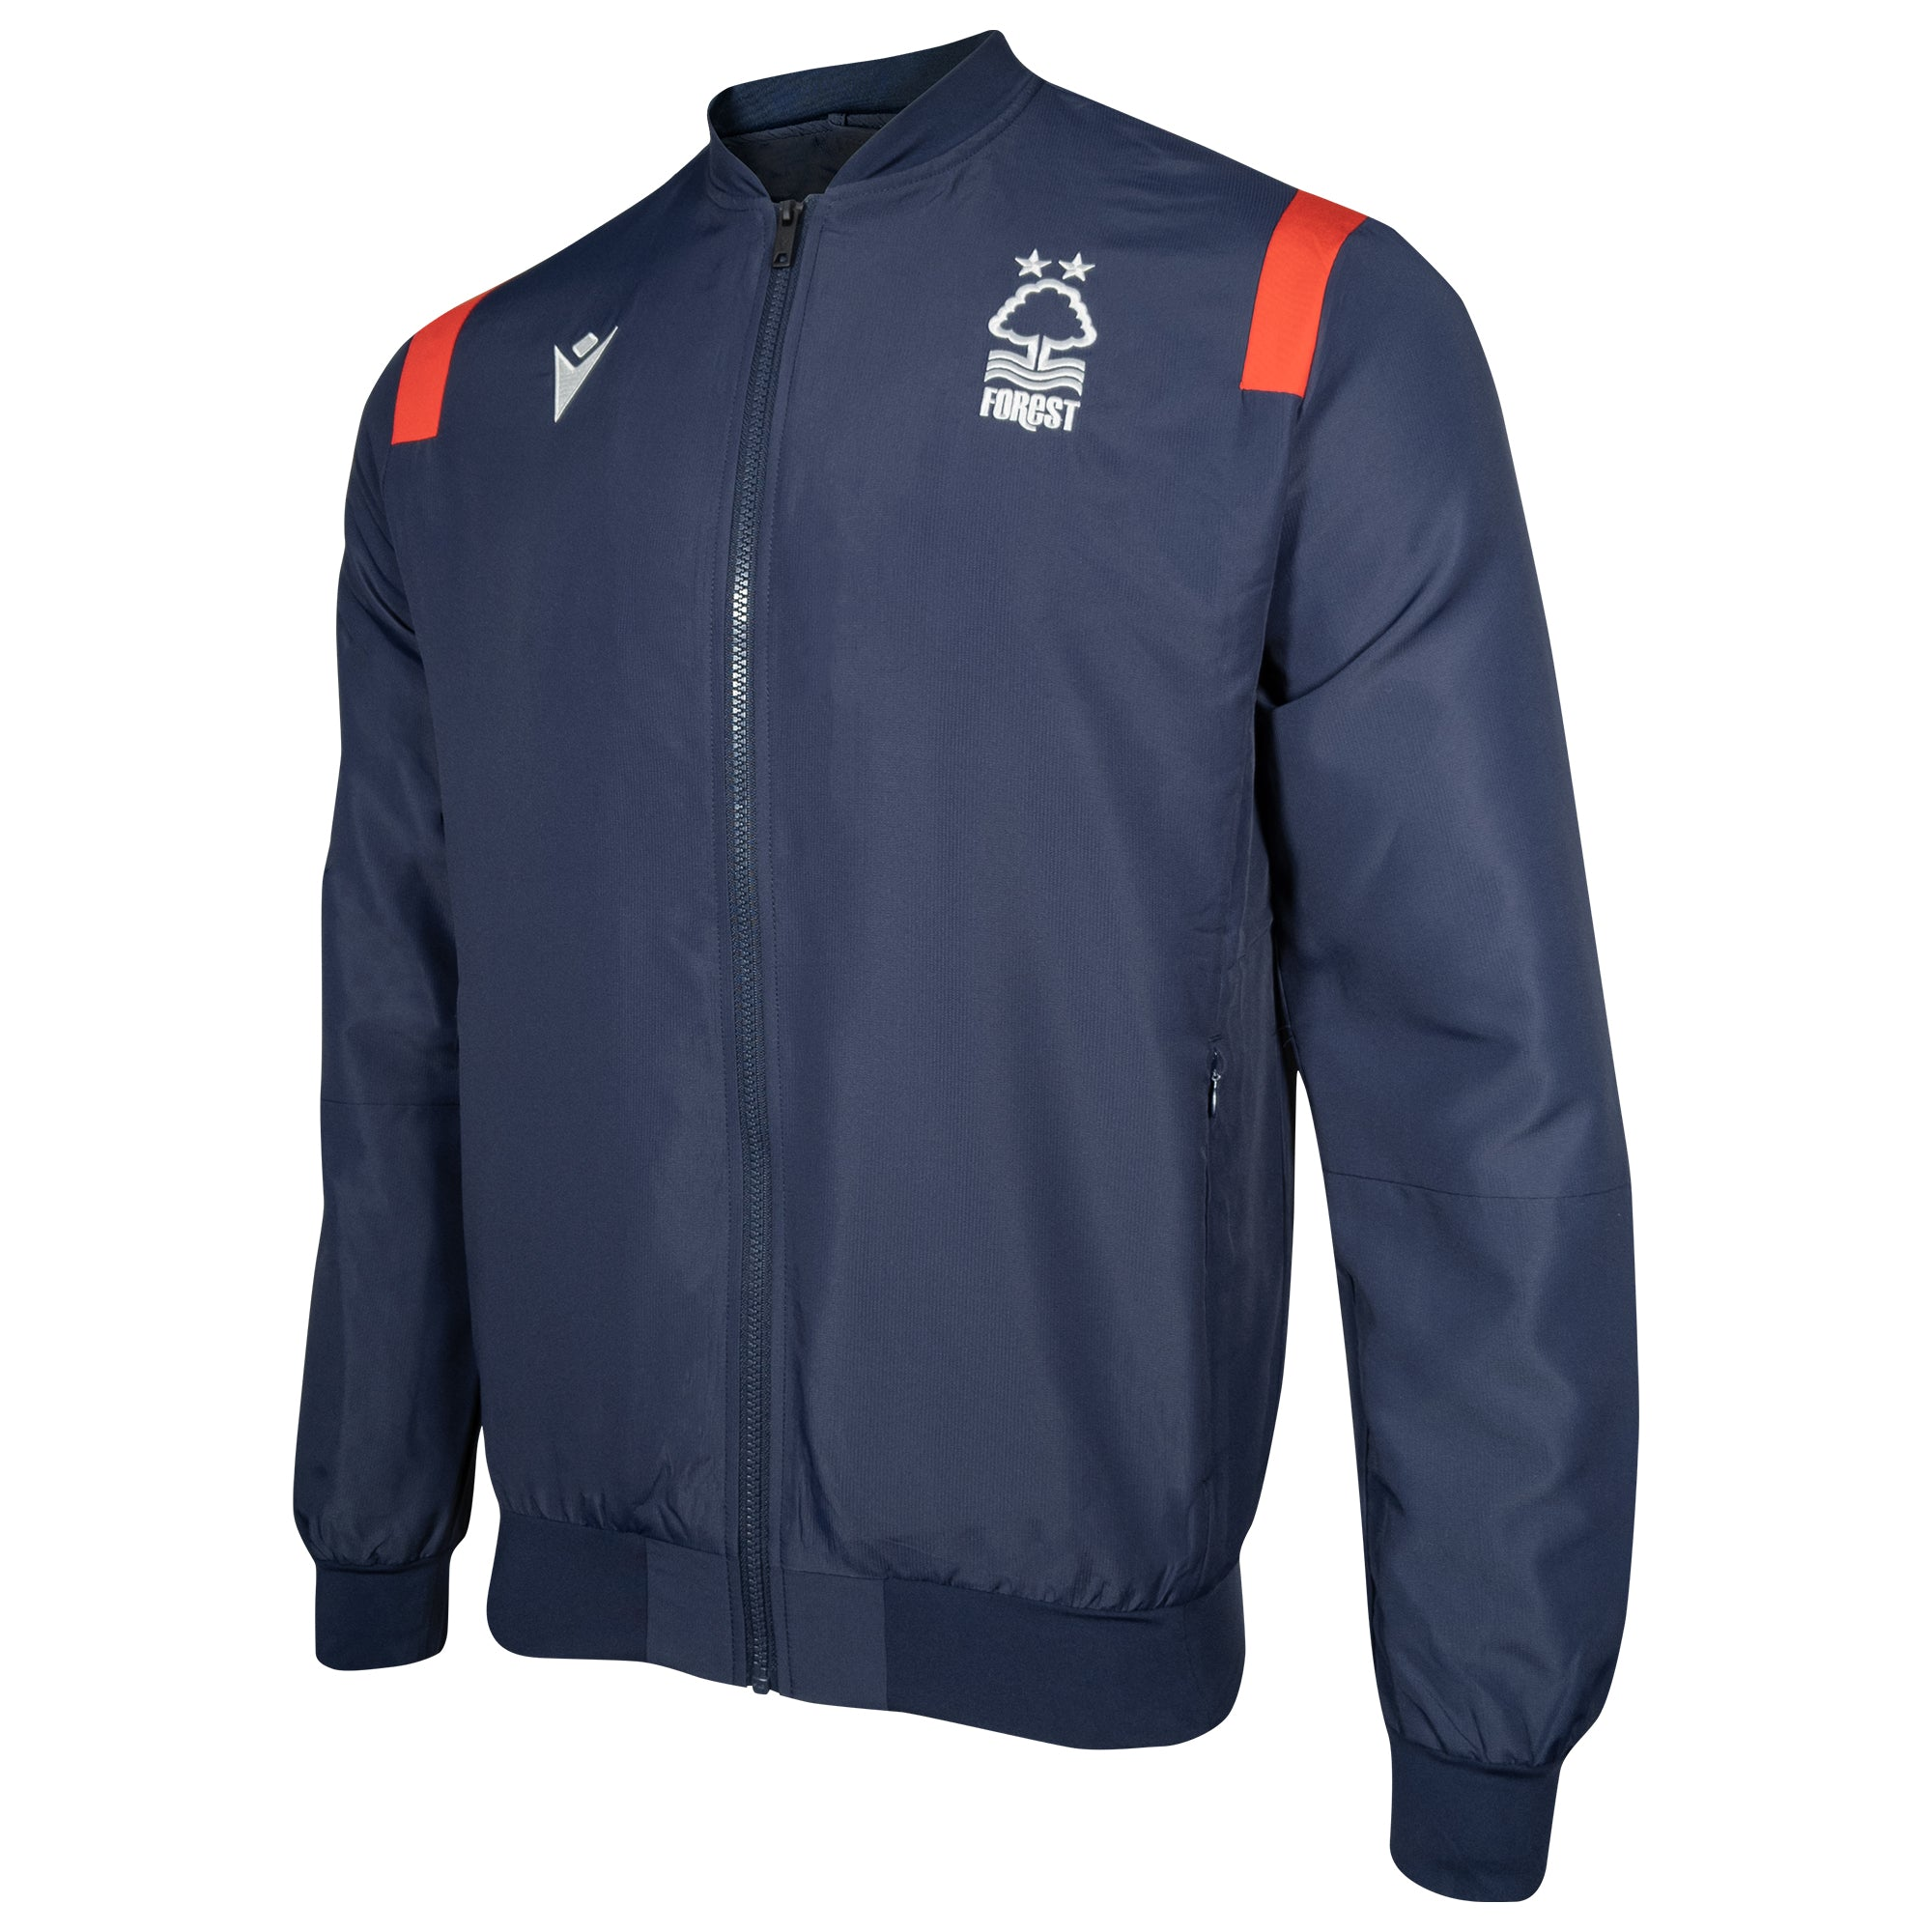 NFFC Junior Staff Full Zip Travel Top 2020/21